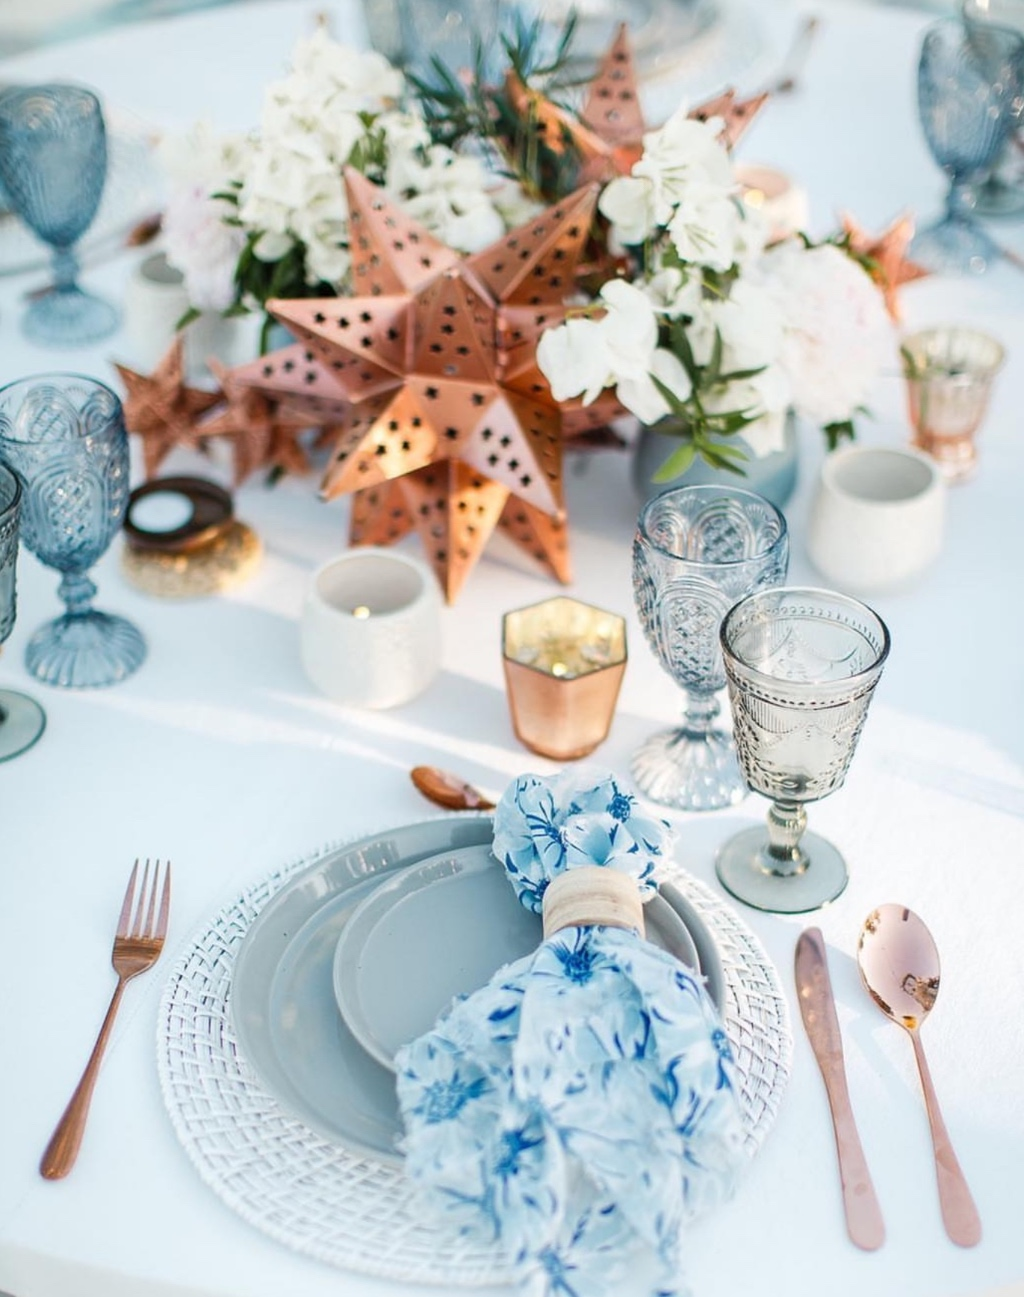 Love all the details about this summer inspiration table decor!